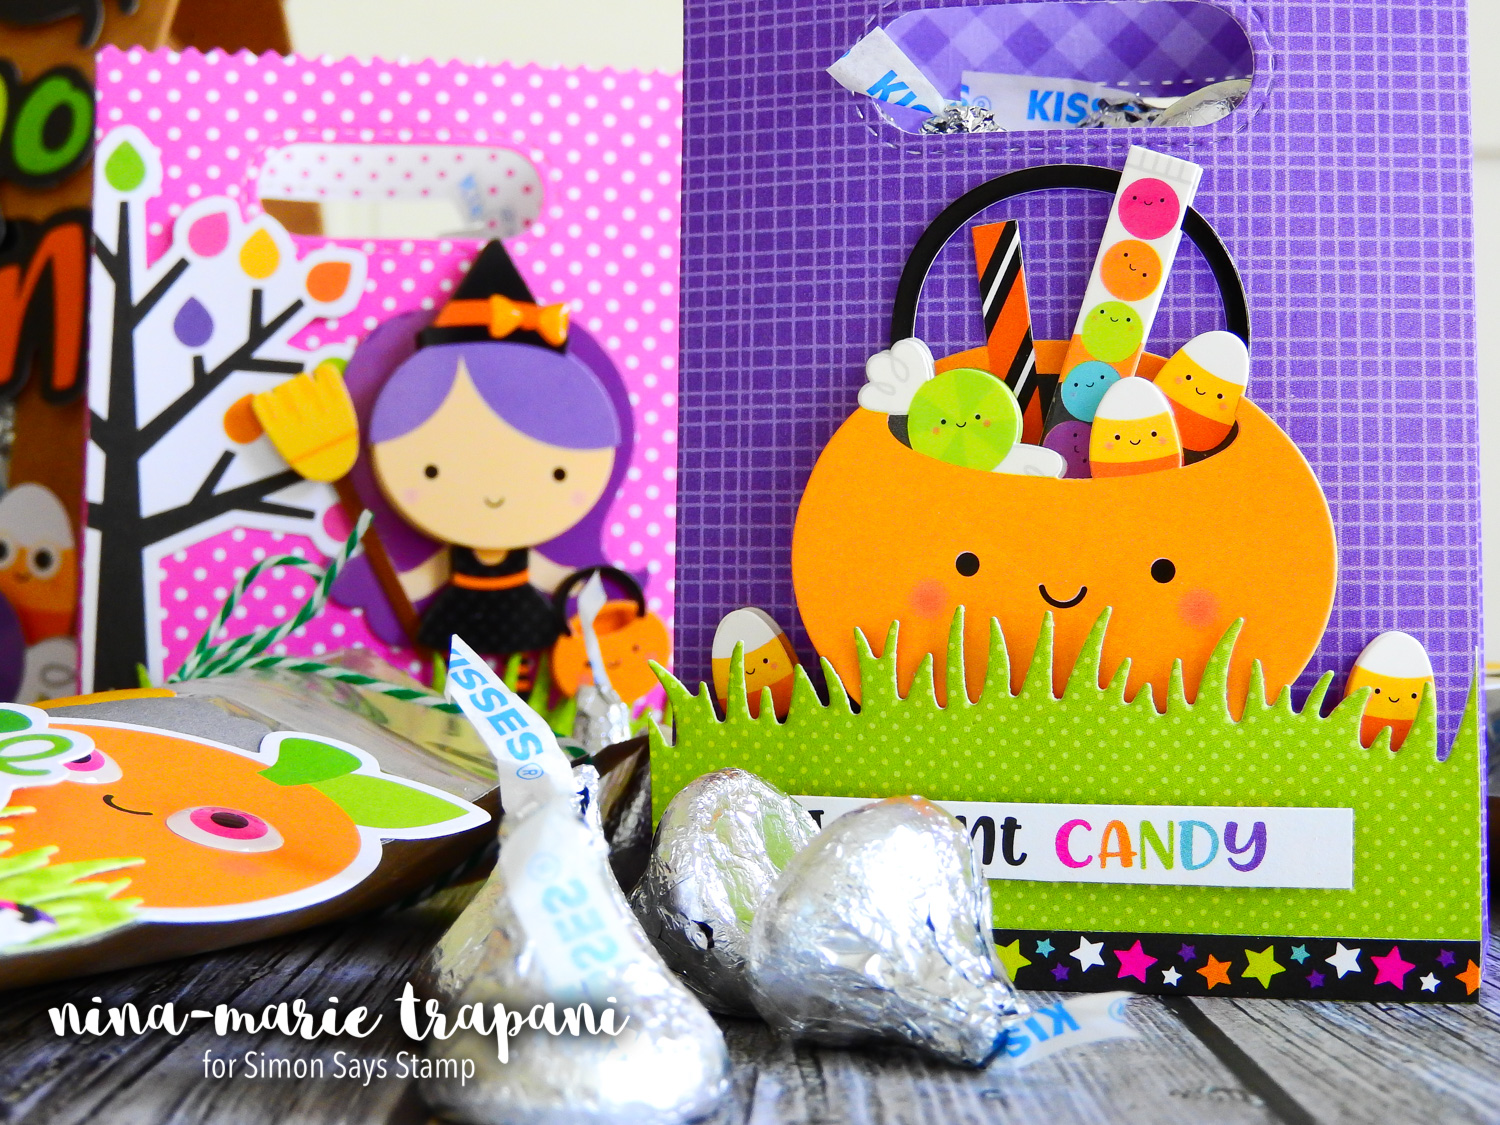 Studio Monday with Nina-Marie: Doodlebug Treat Bags for Halloween! | Nina-Marie Design